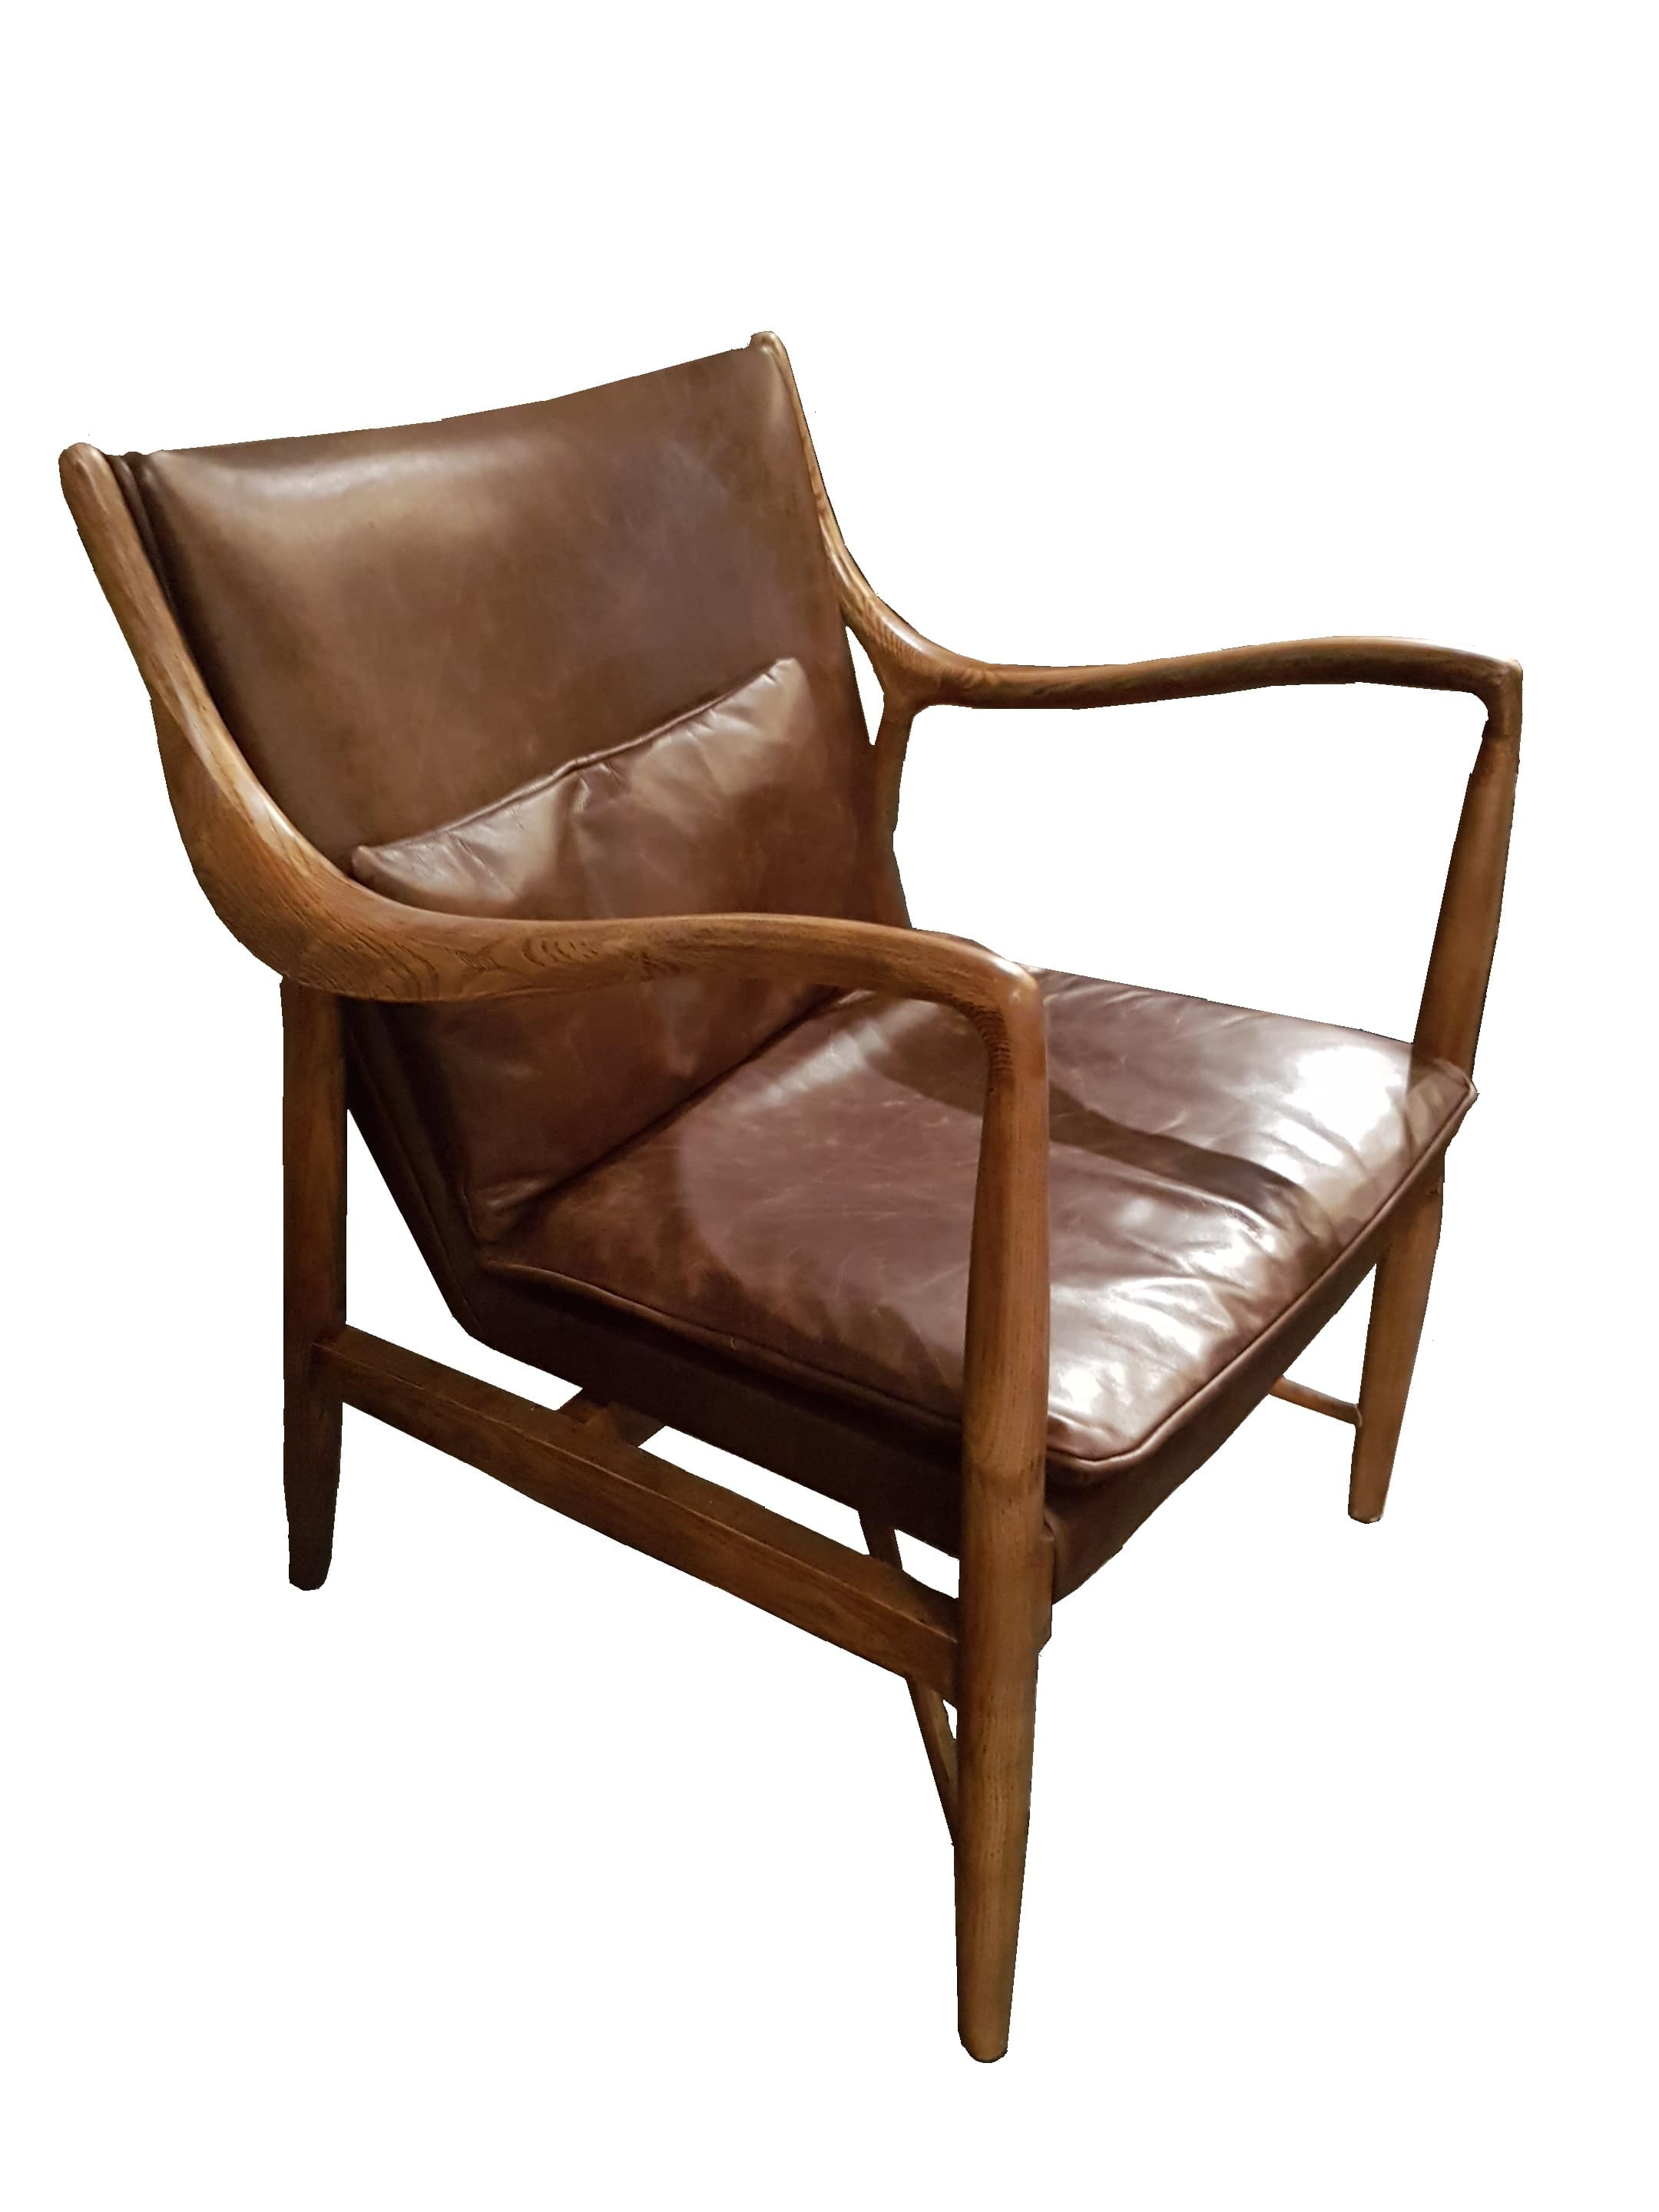 Danish Classic Leather and Oak Chair